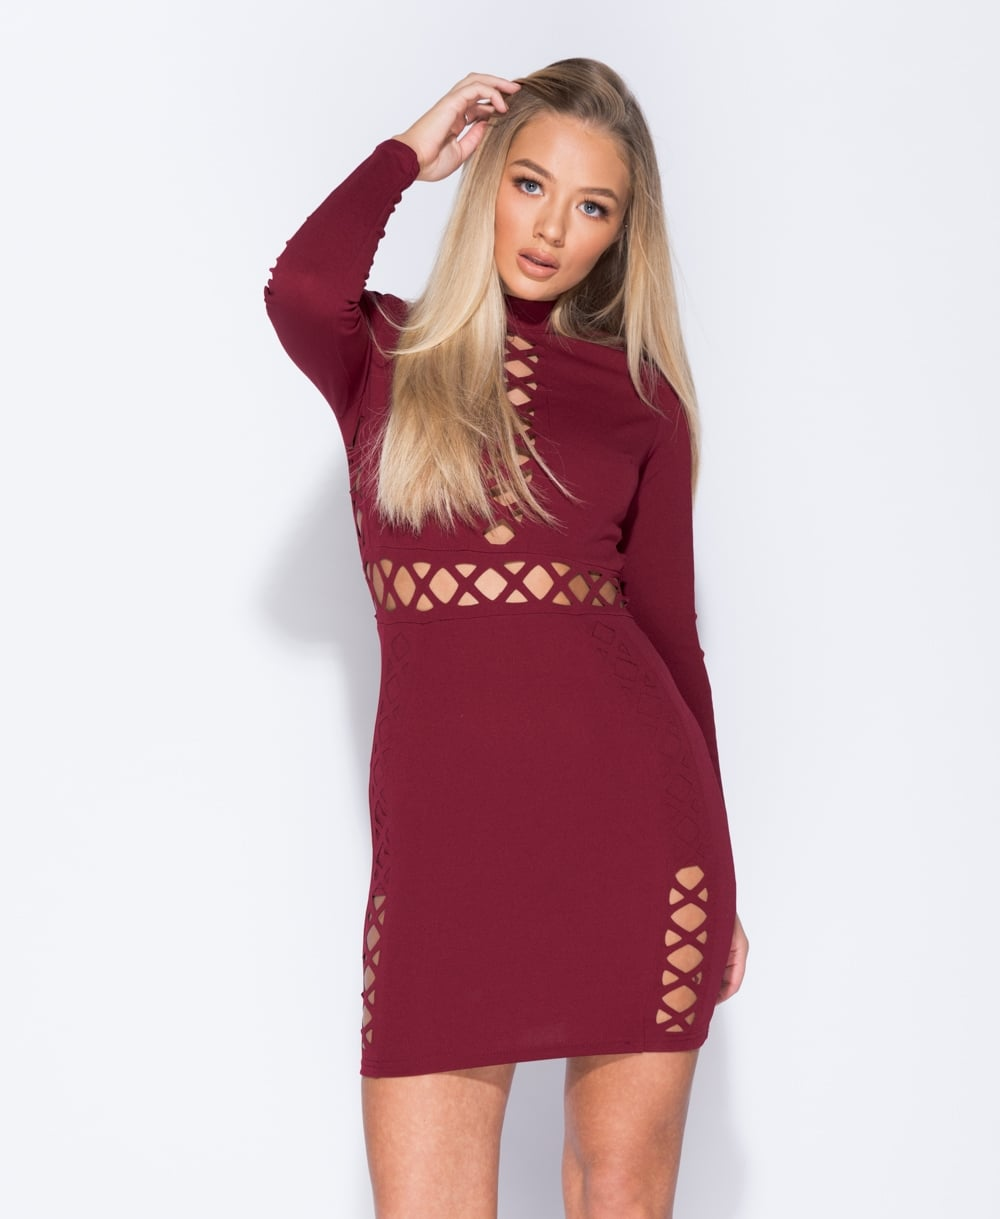 Cut Out Detail Bodycon Mini Dress x 2 Colours Available